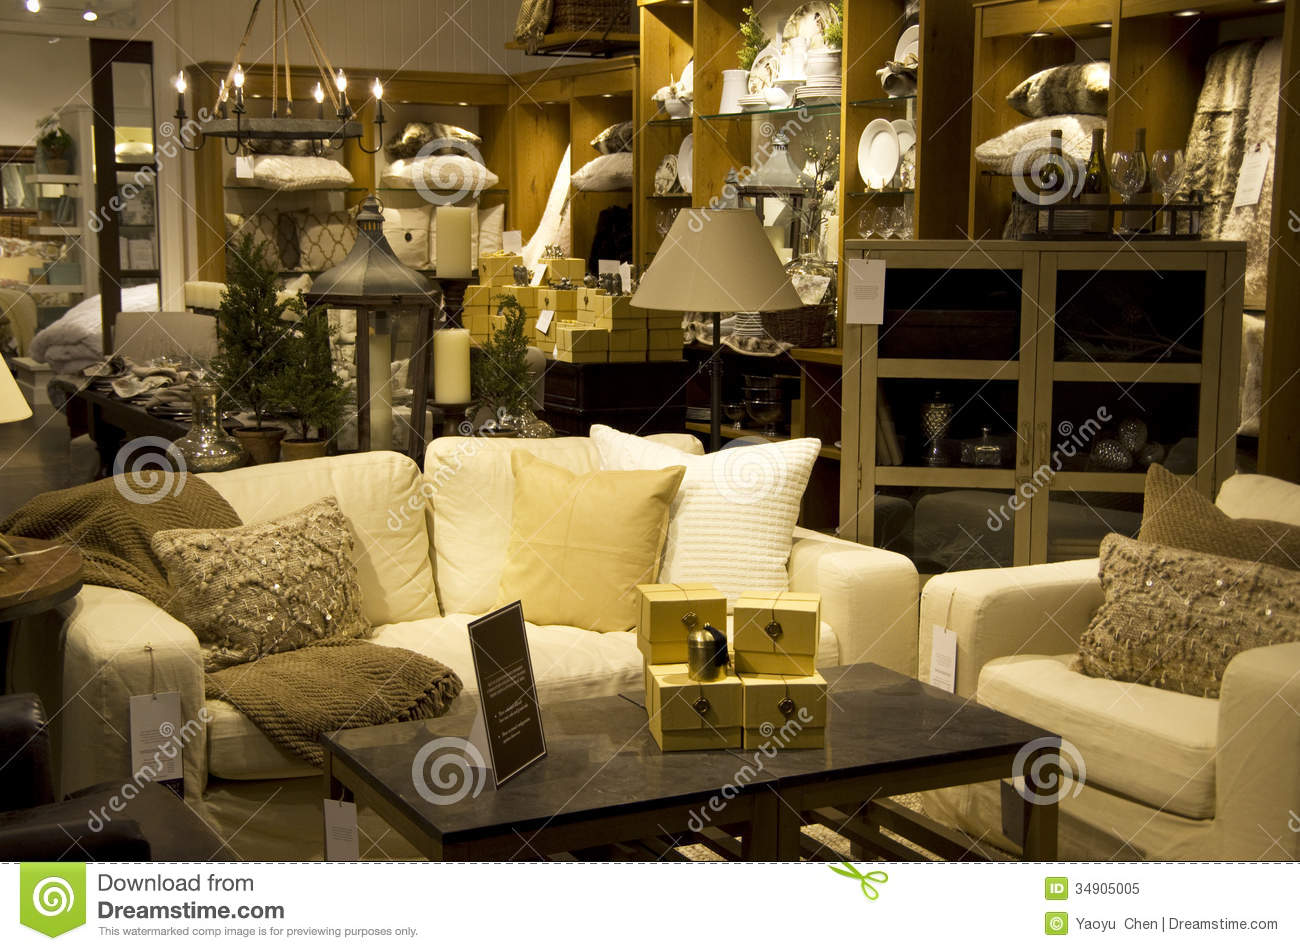 Luxury furniture home decor store royalty free stock photo - Decor house furniture ...